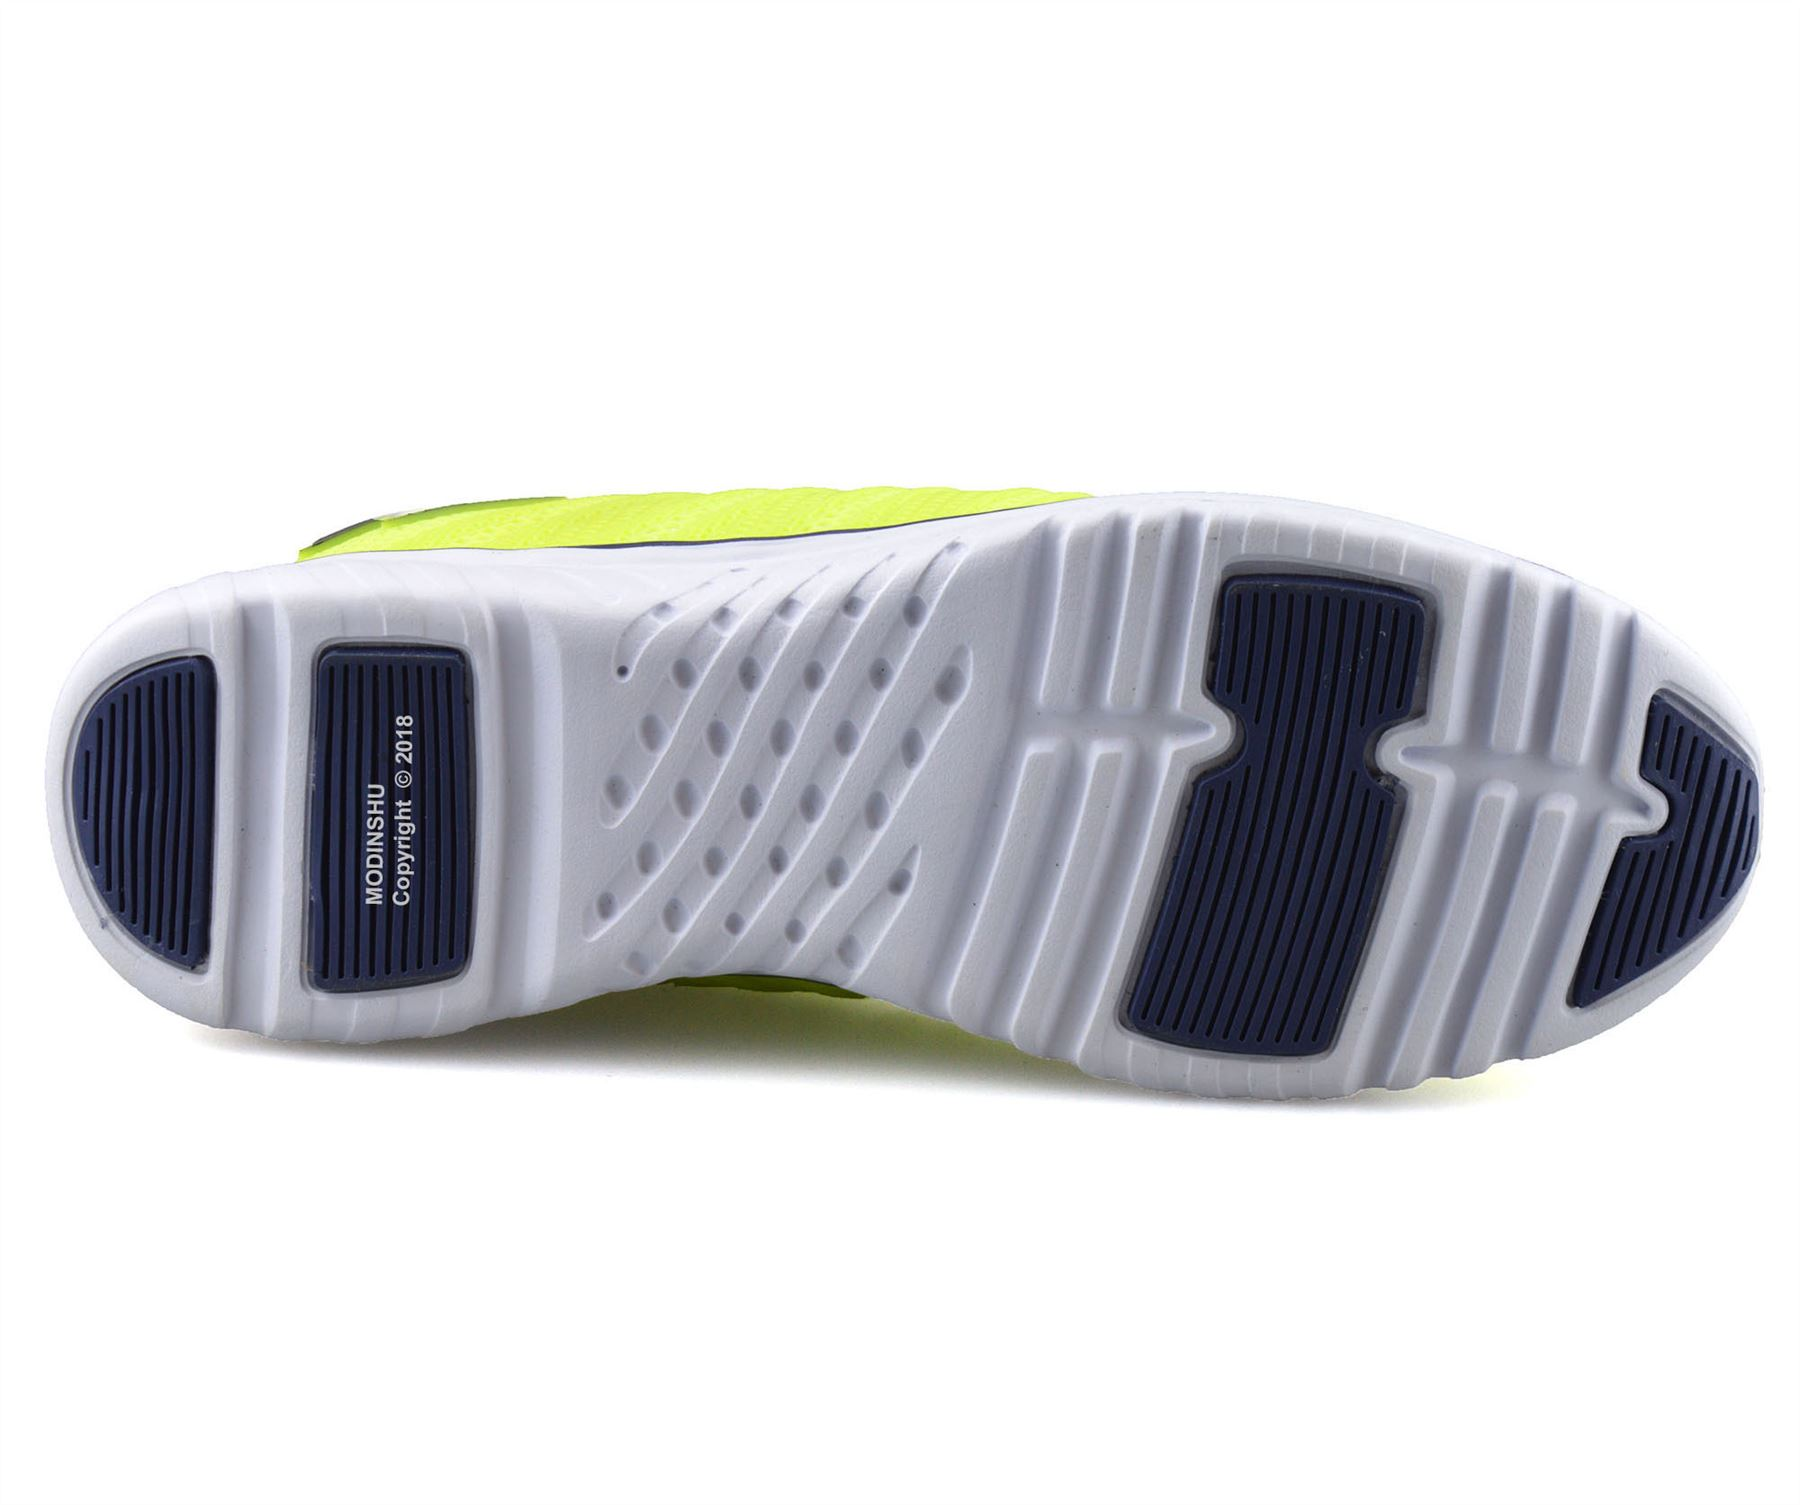 Mens-Casual-Running-Walking-Sports-Gym-Shock-Absorbing-Lace-Trainers-Shoes-Size thumbnail 22